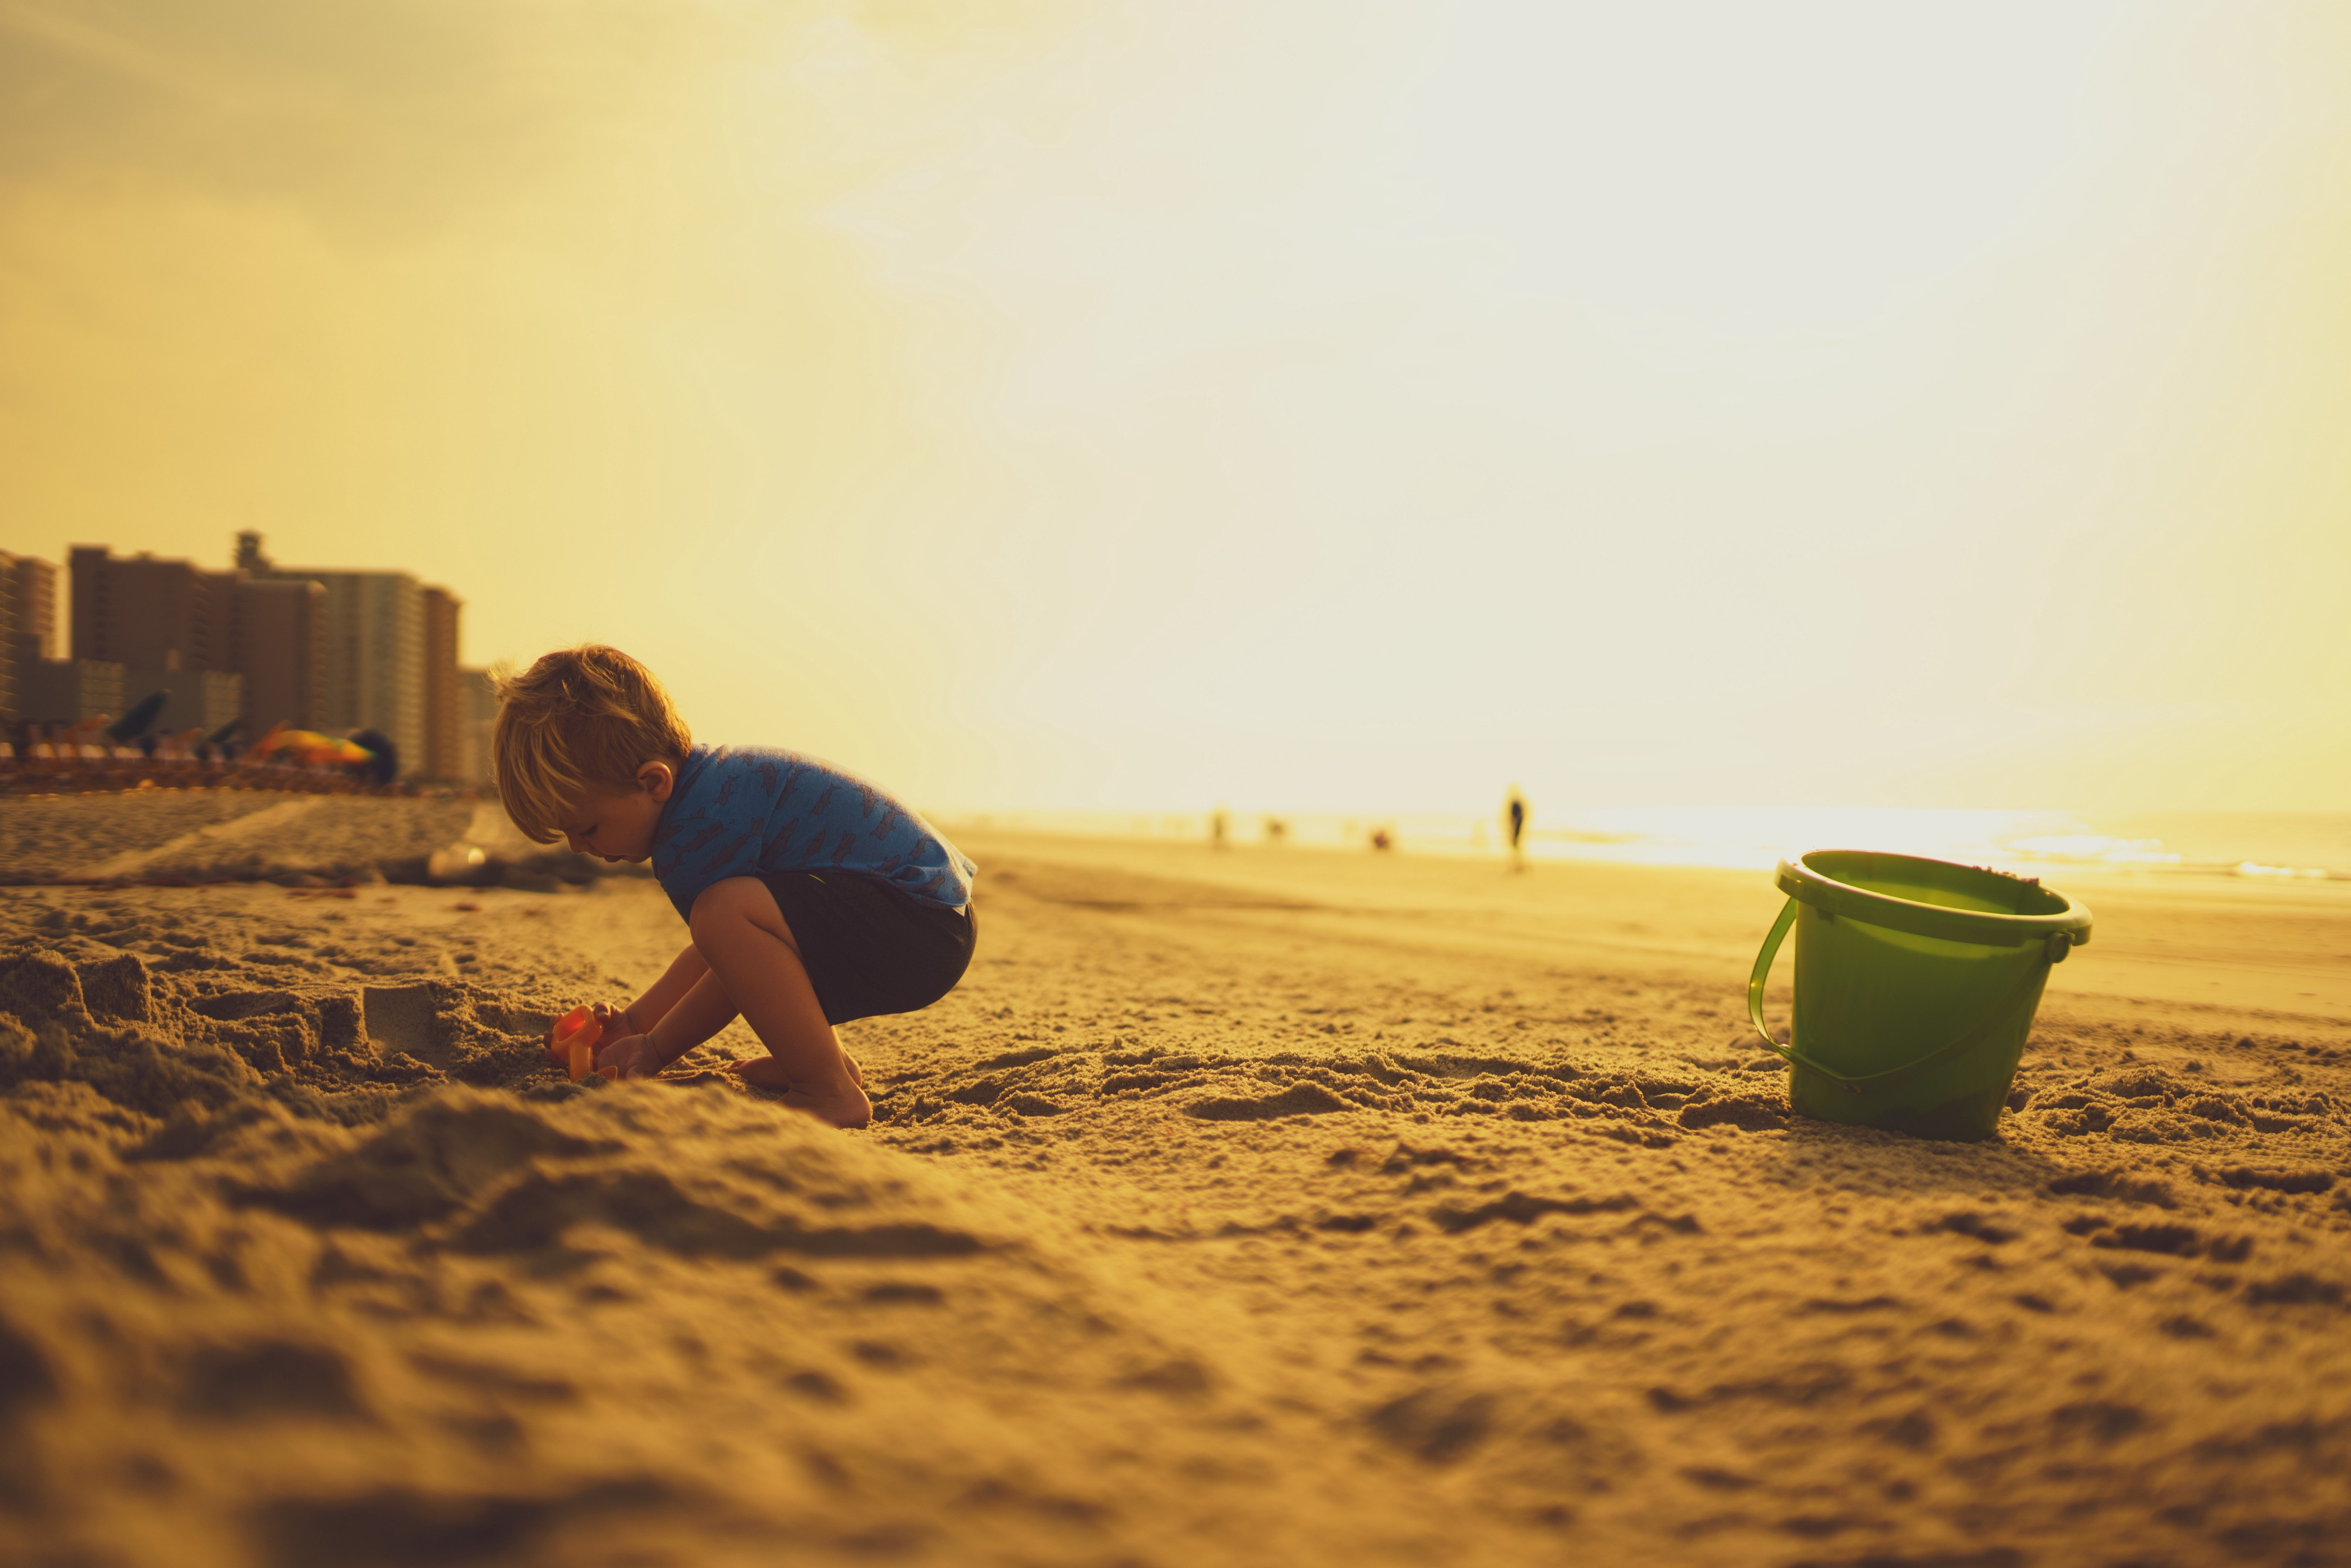 A child plays in the sand